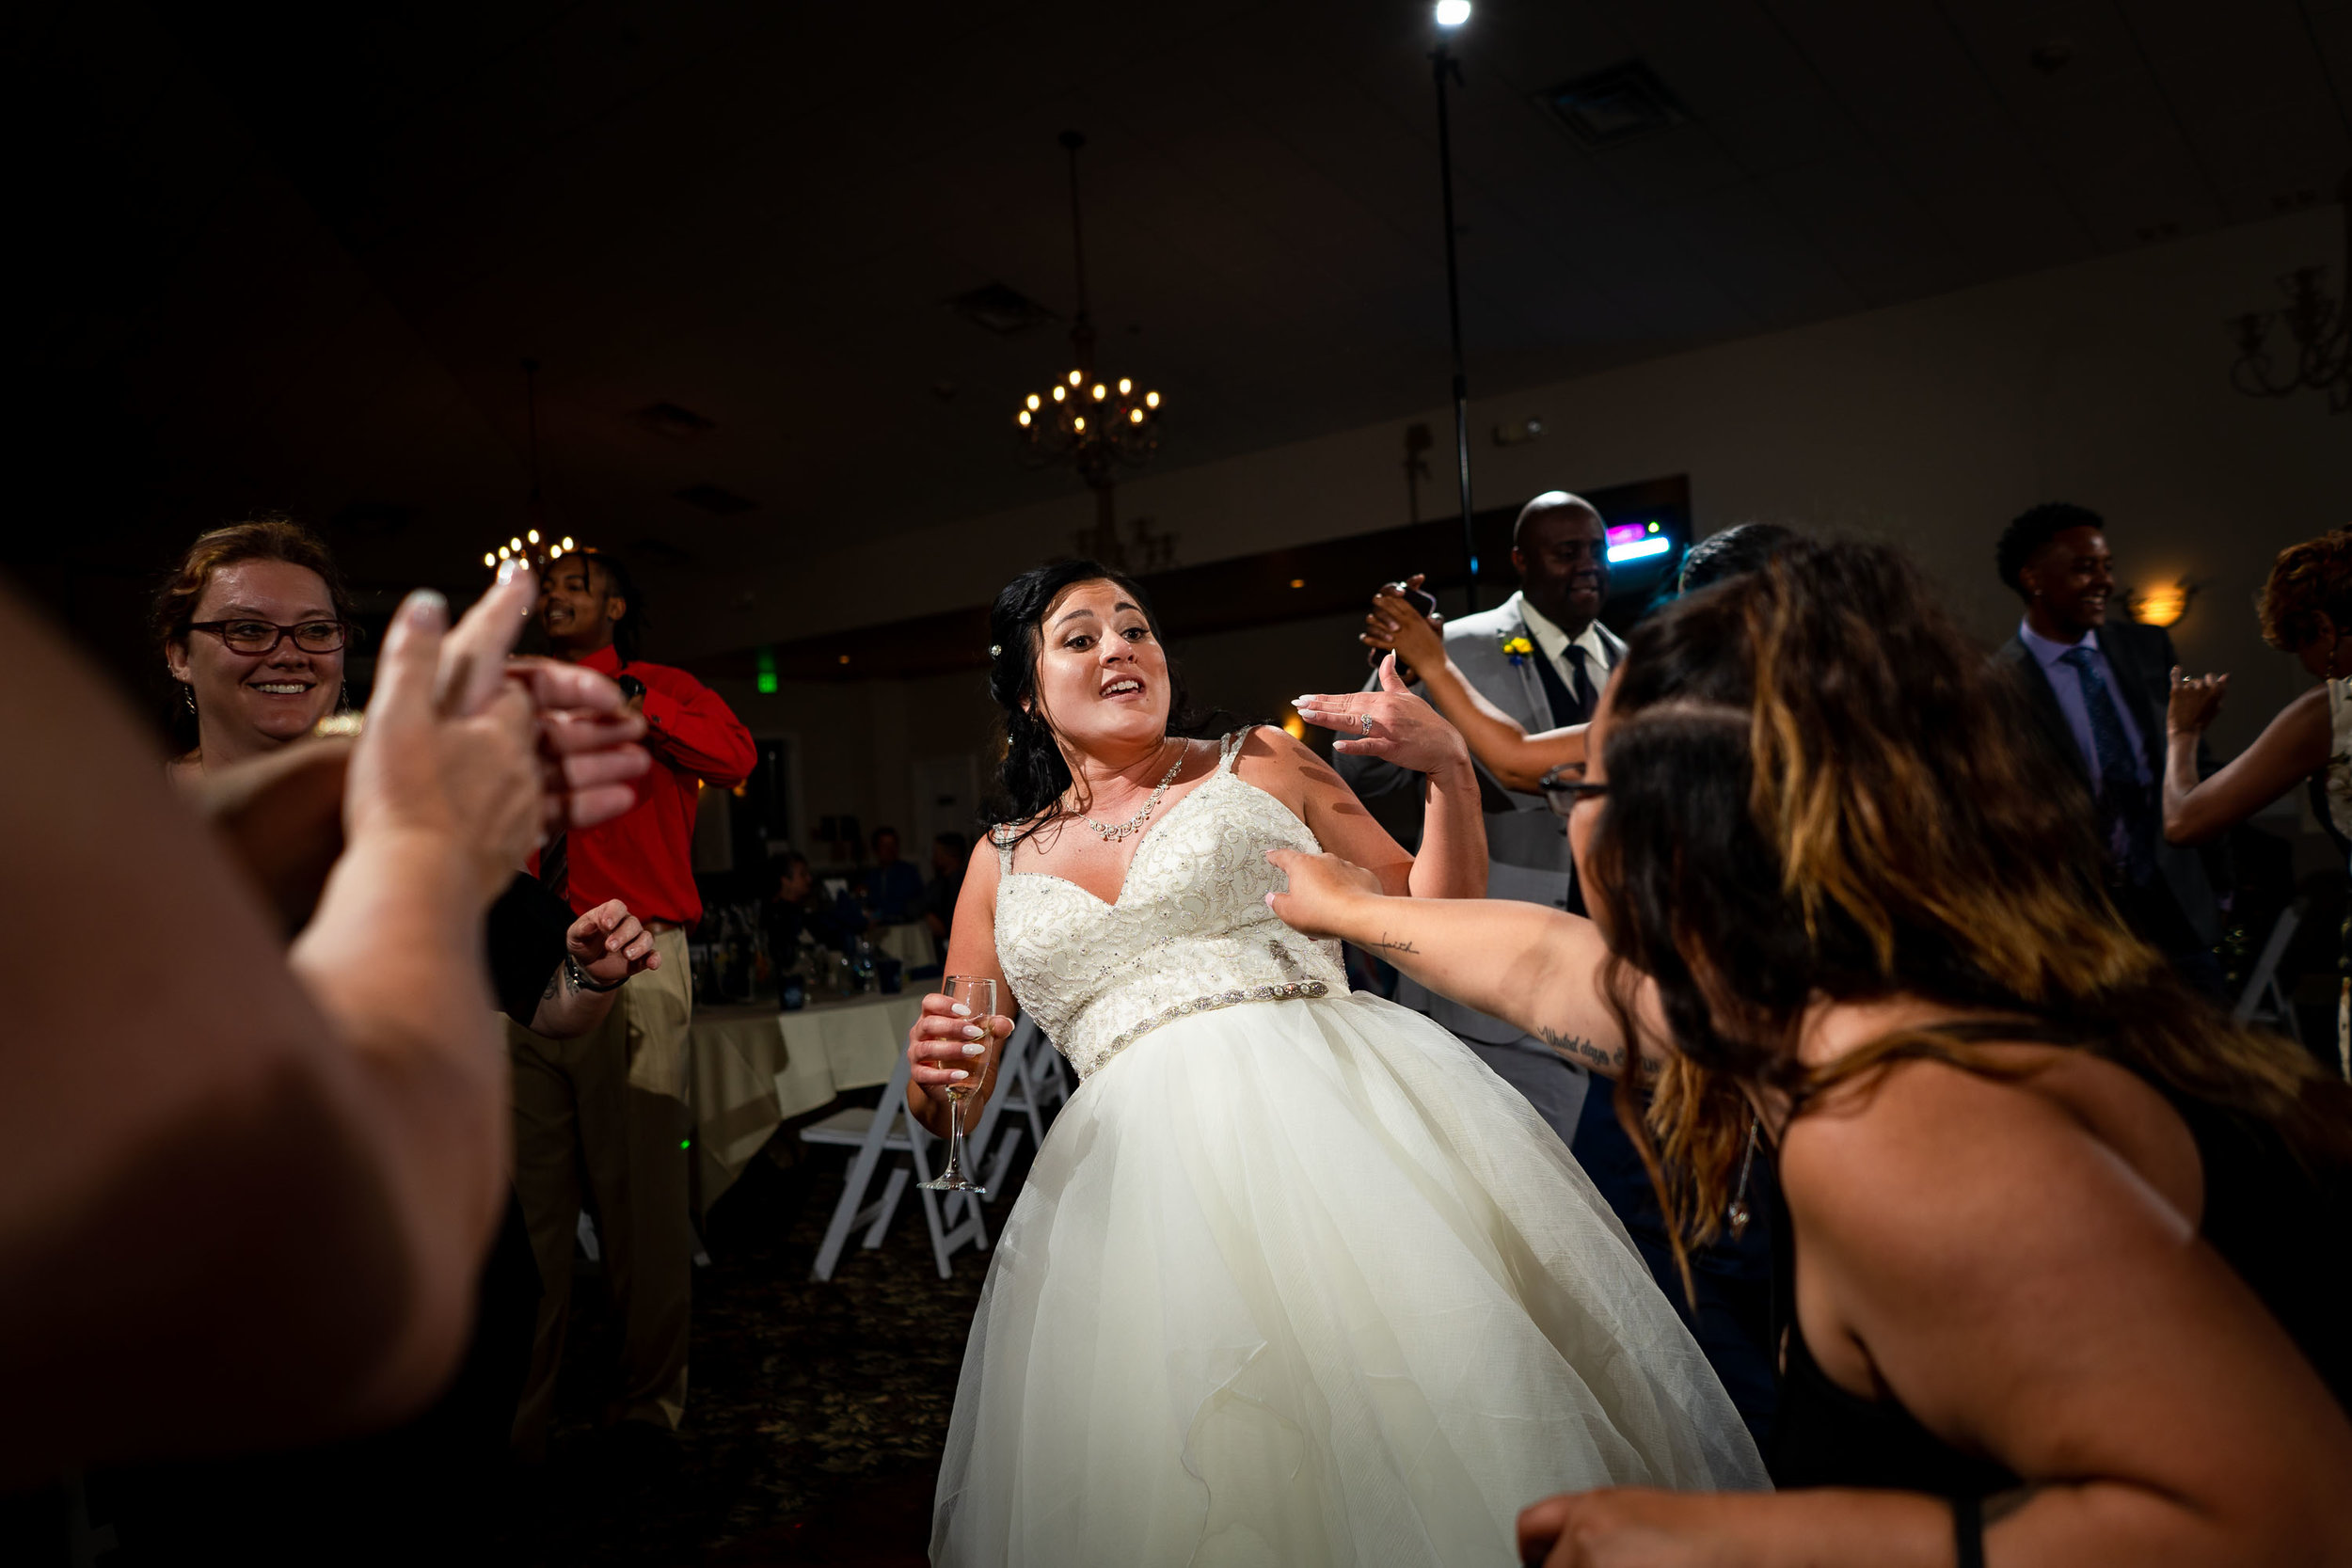 Joloni_Jenny_Wedding_148.jpg